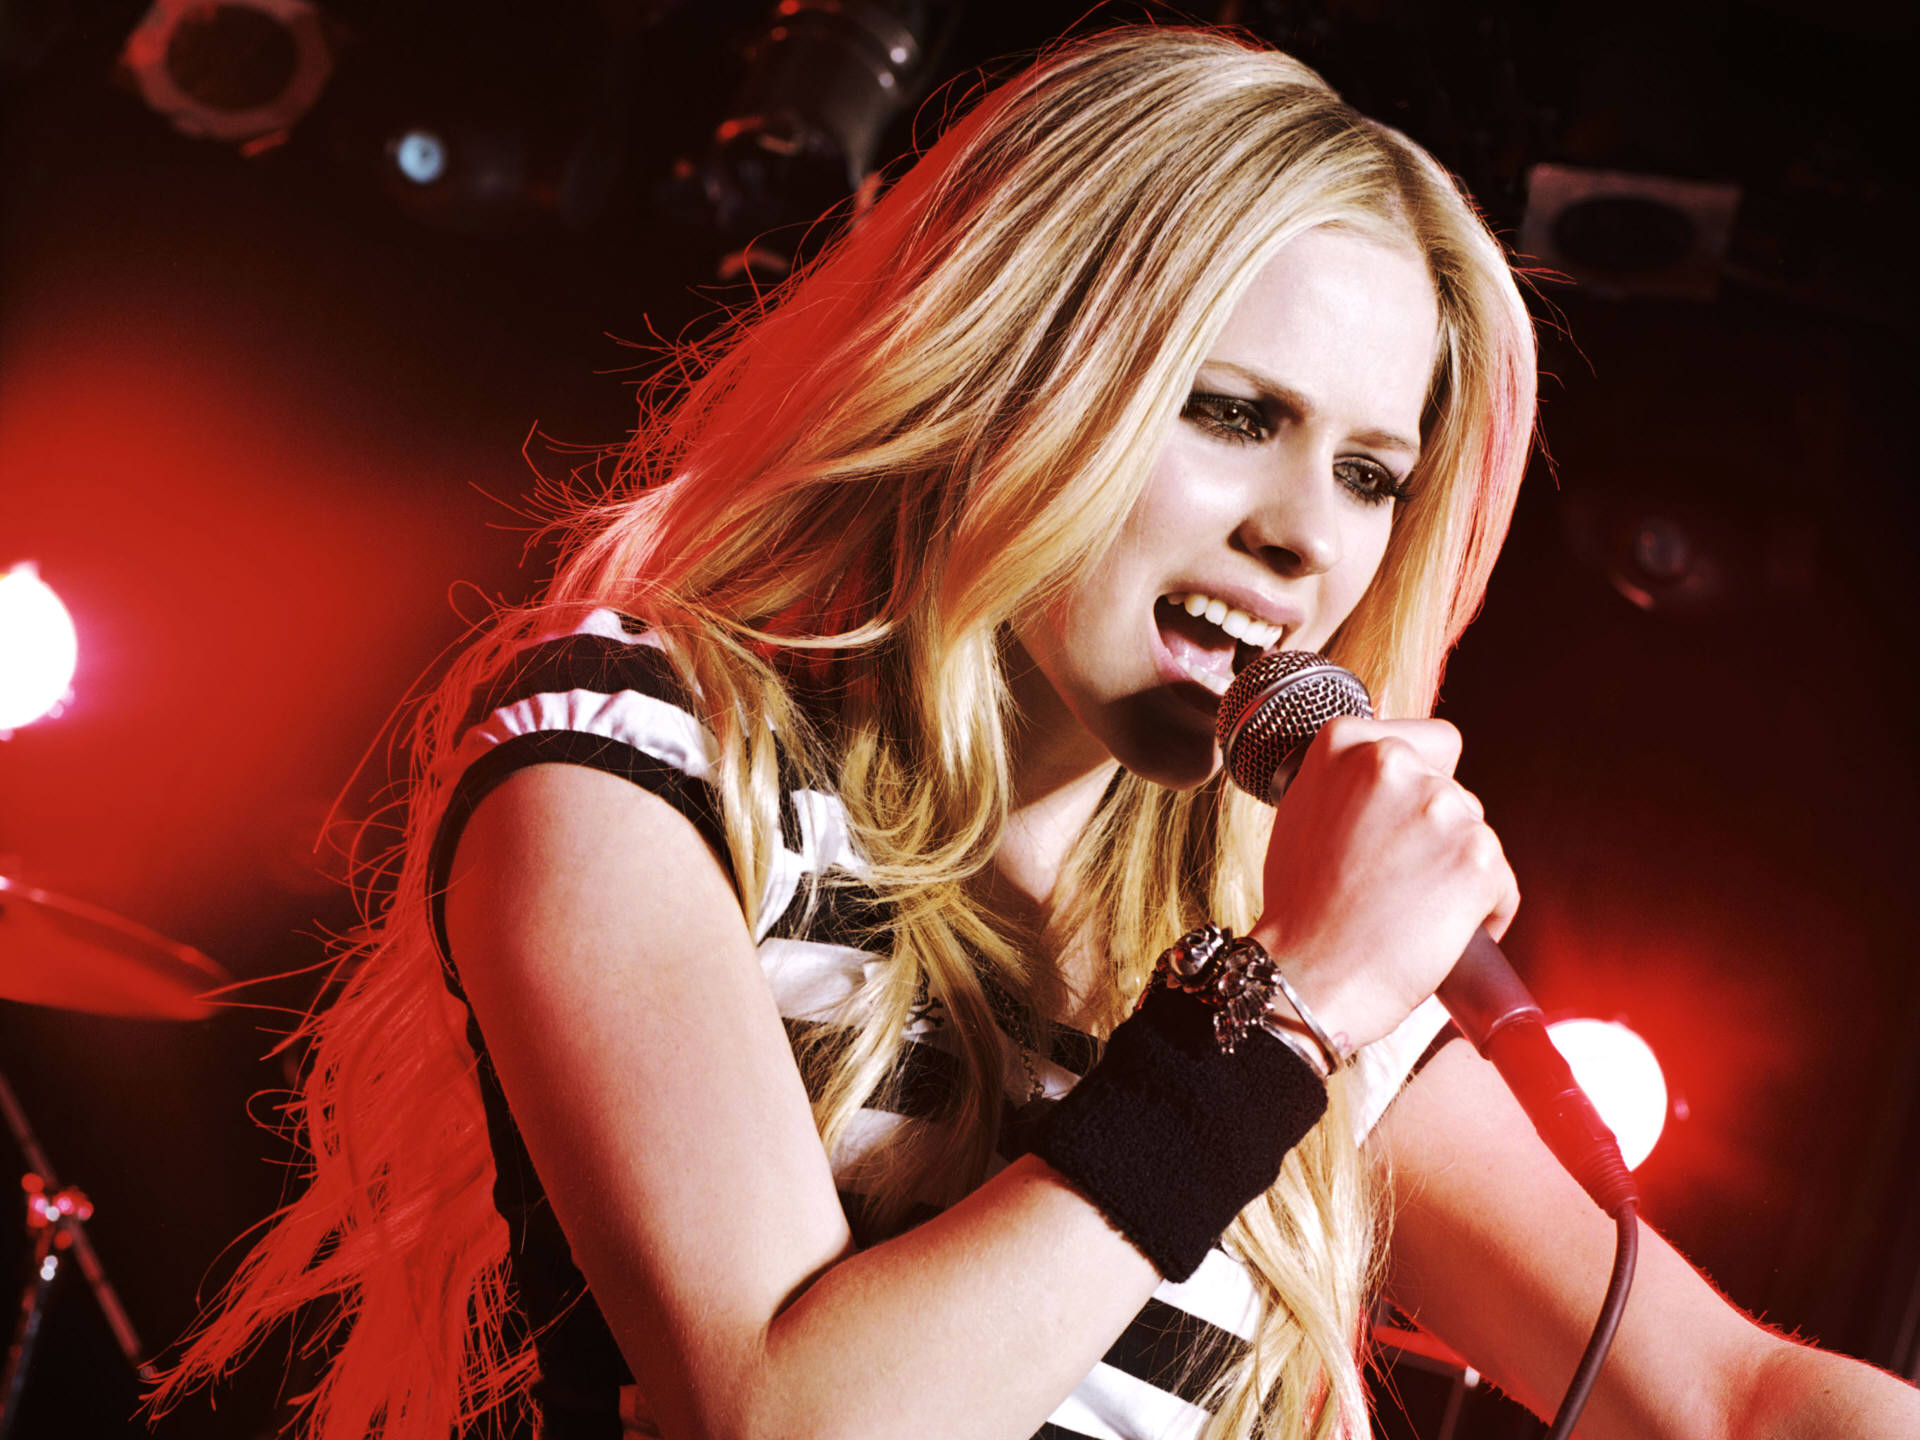 Avril Lavigne Live HD (4) 662.52 Kb